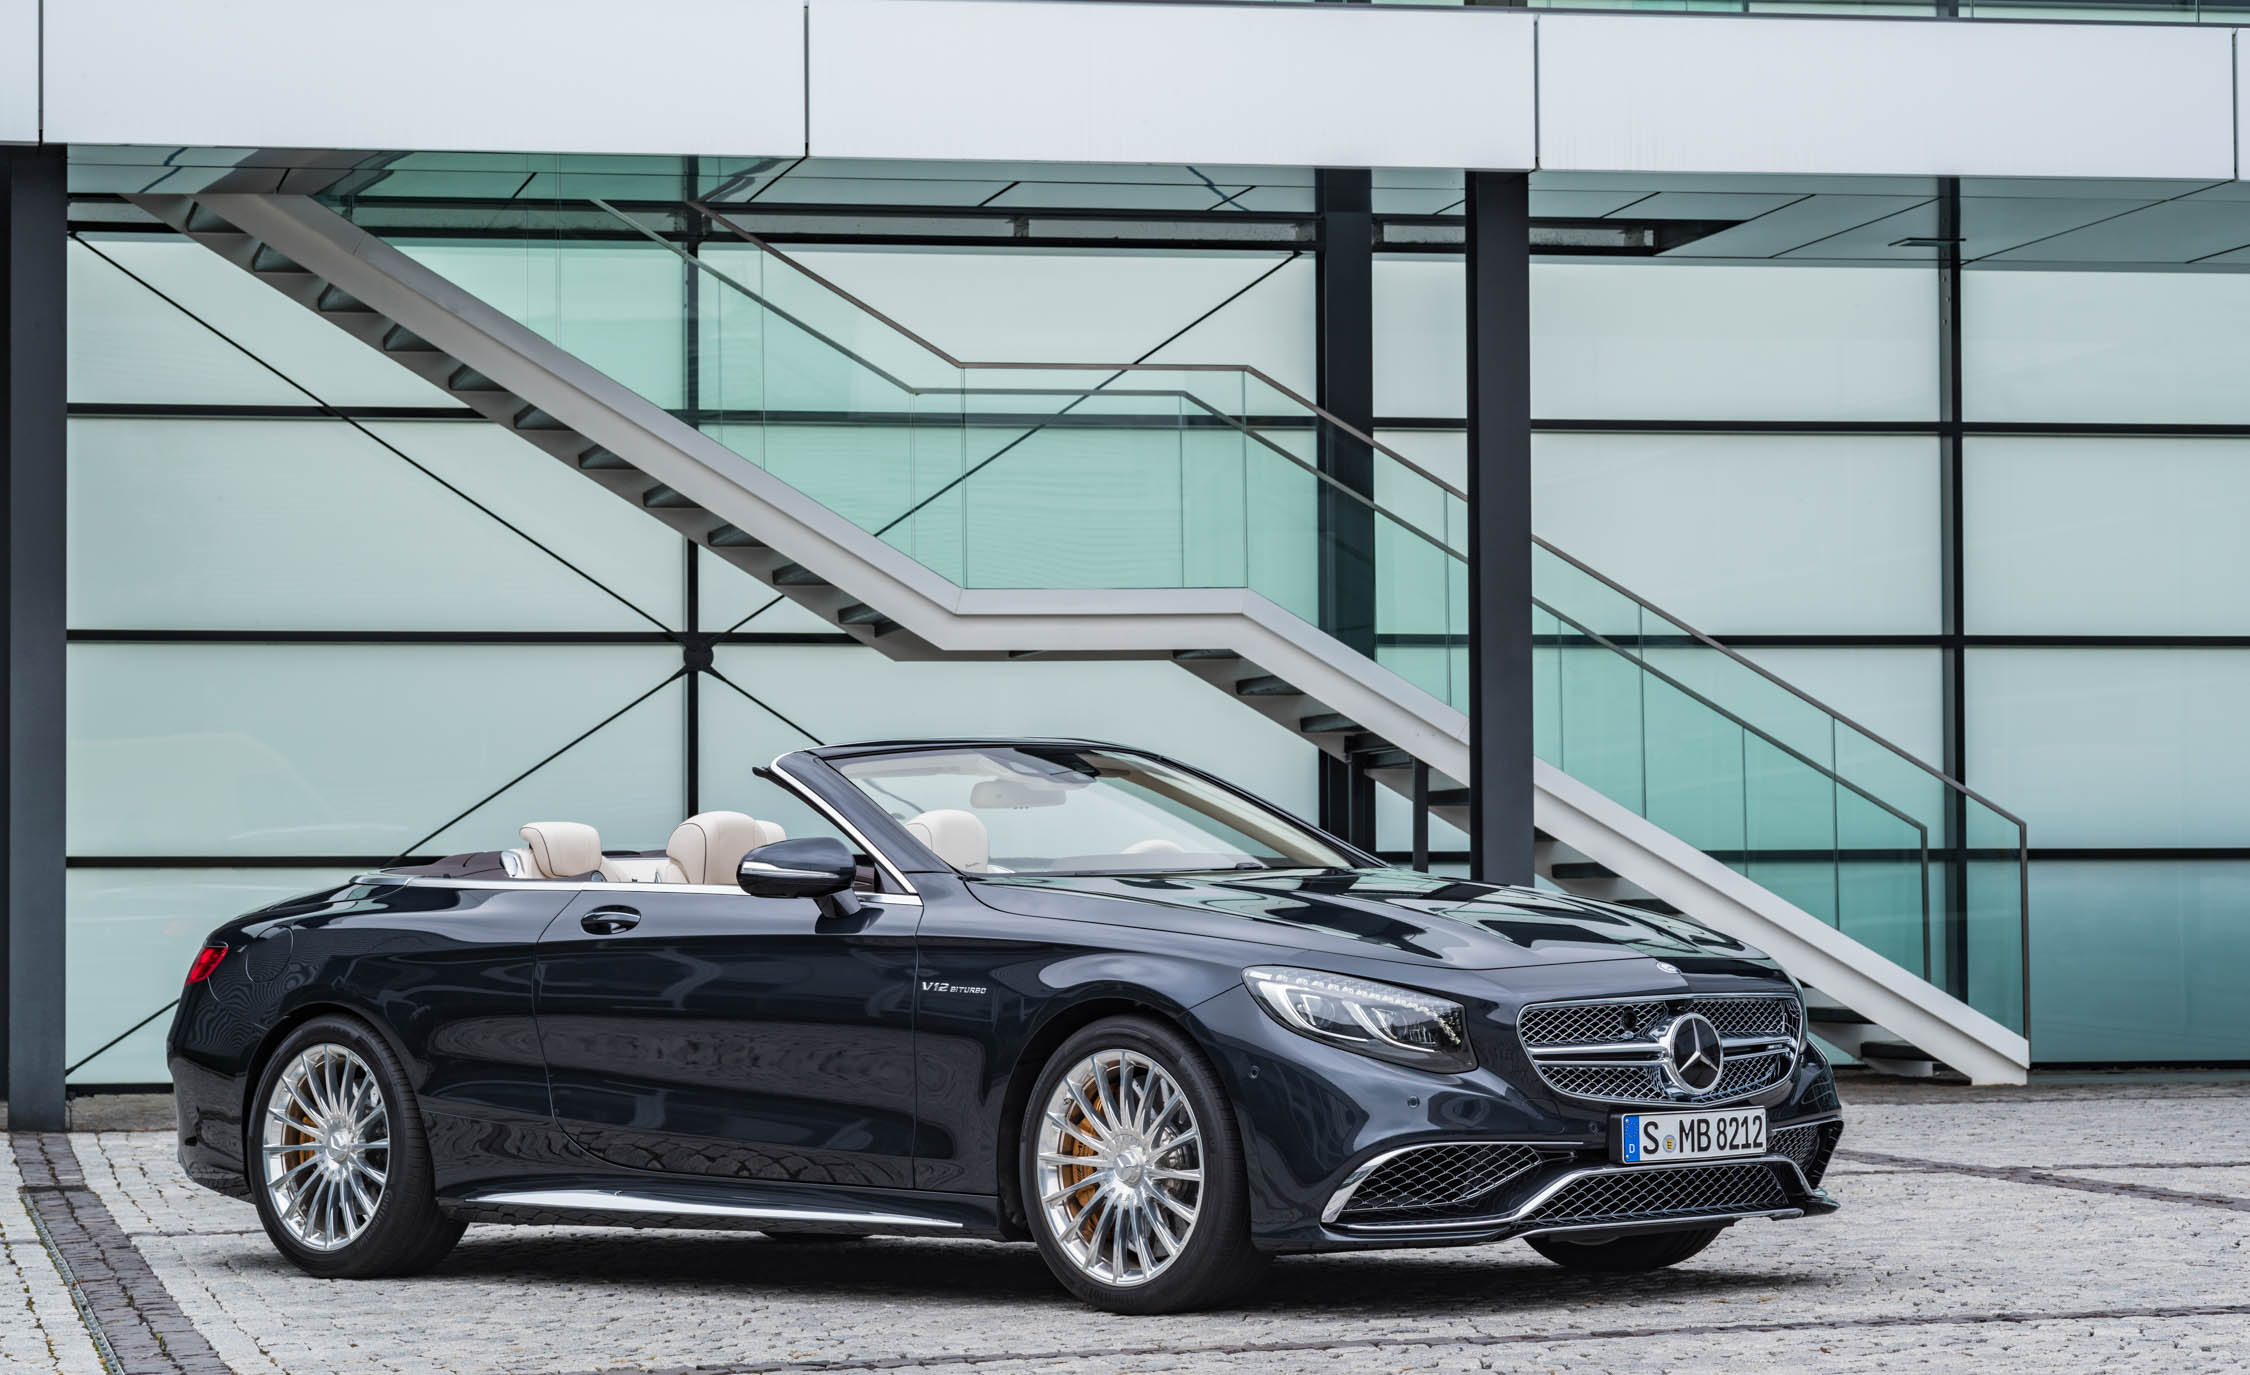 2017 Mercedes Amg S65 Cabriolet Exterior Front And Side View Roof Open (Photo 15 of 15)